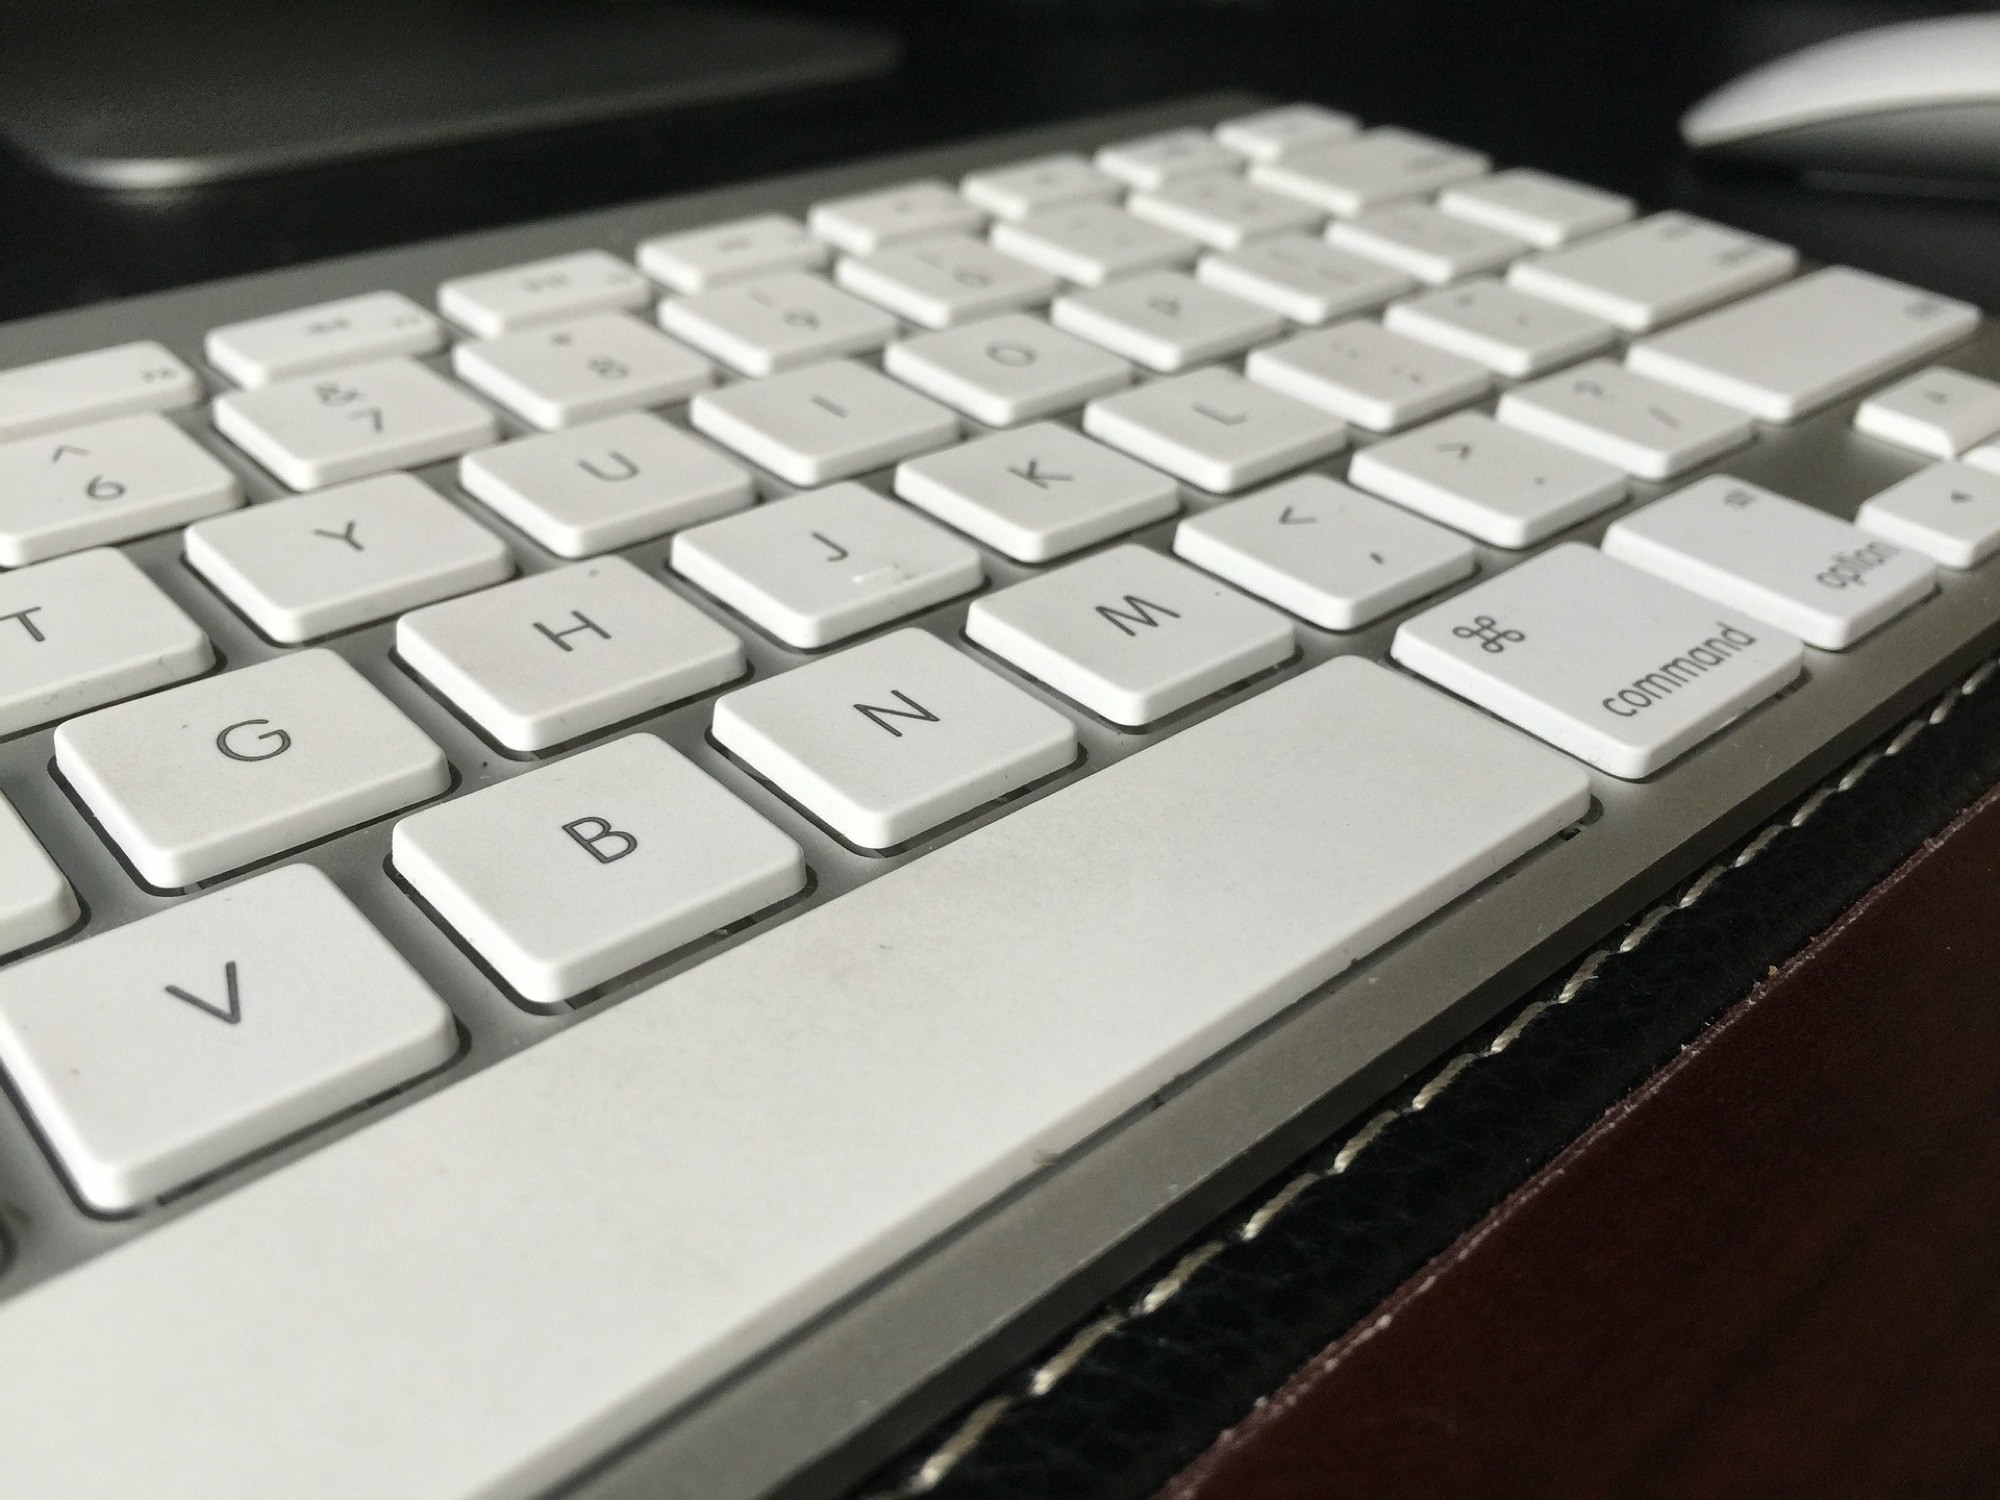 Mac Apple Keyboard - Numbers keyboard shortcuts